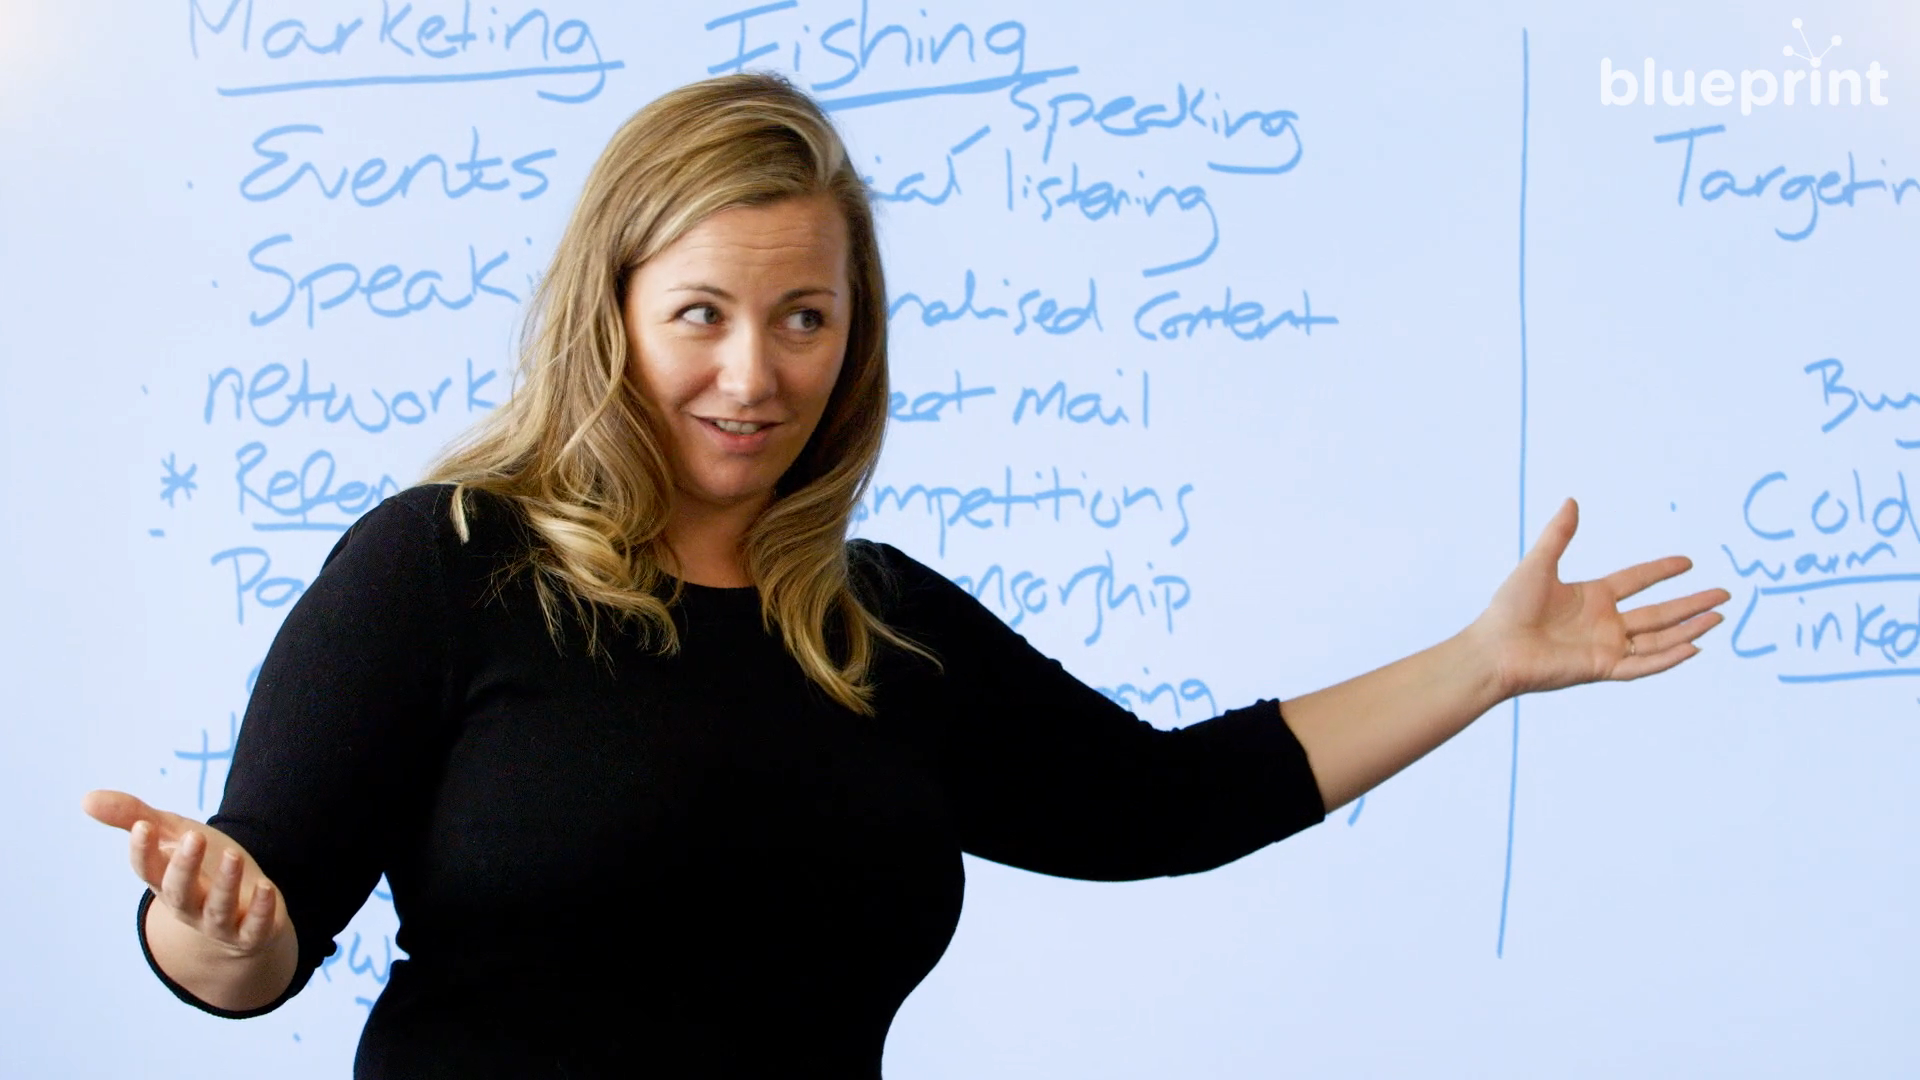 Woman gestures in front of whiteboard